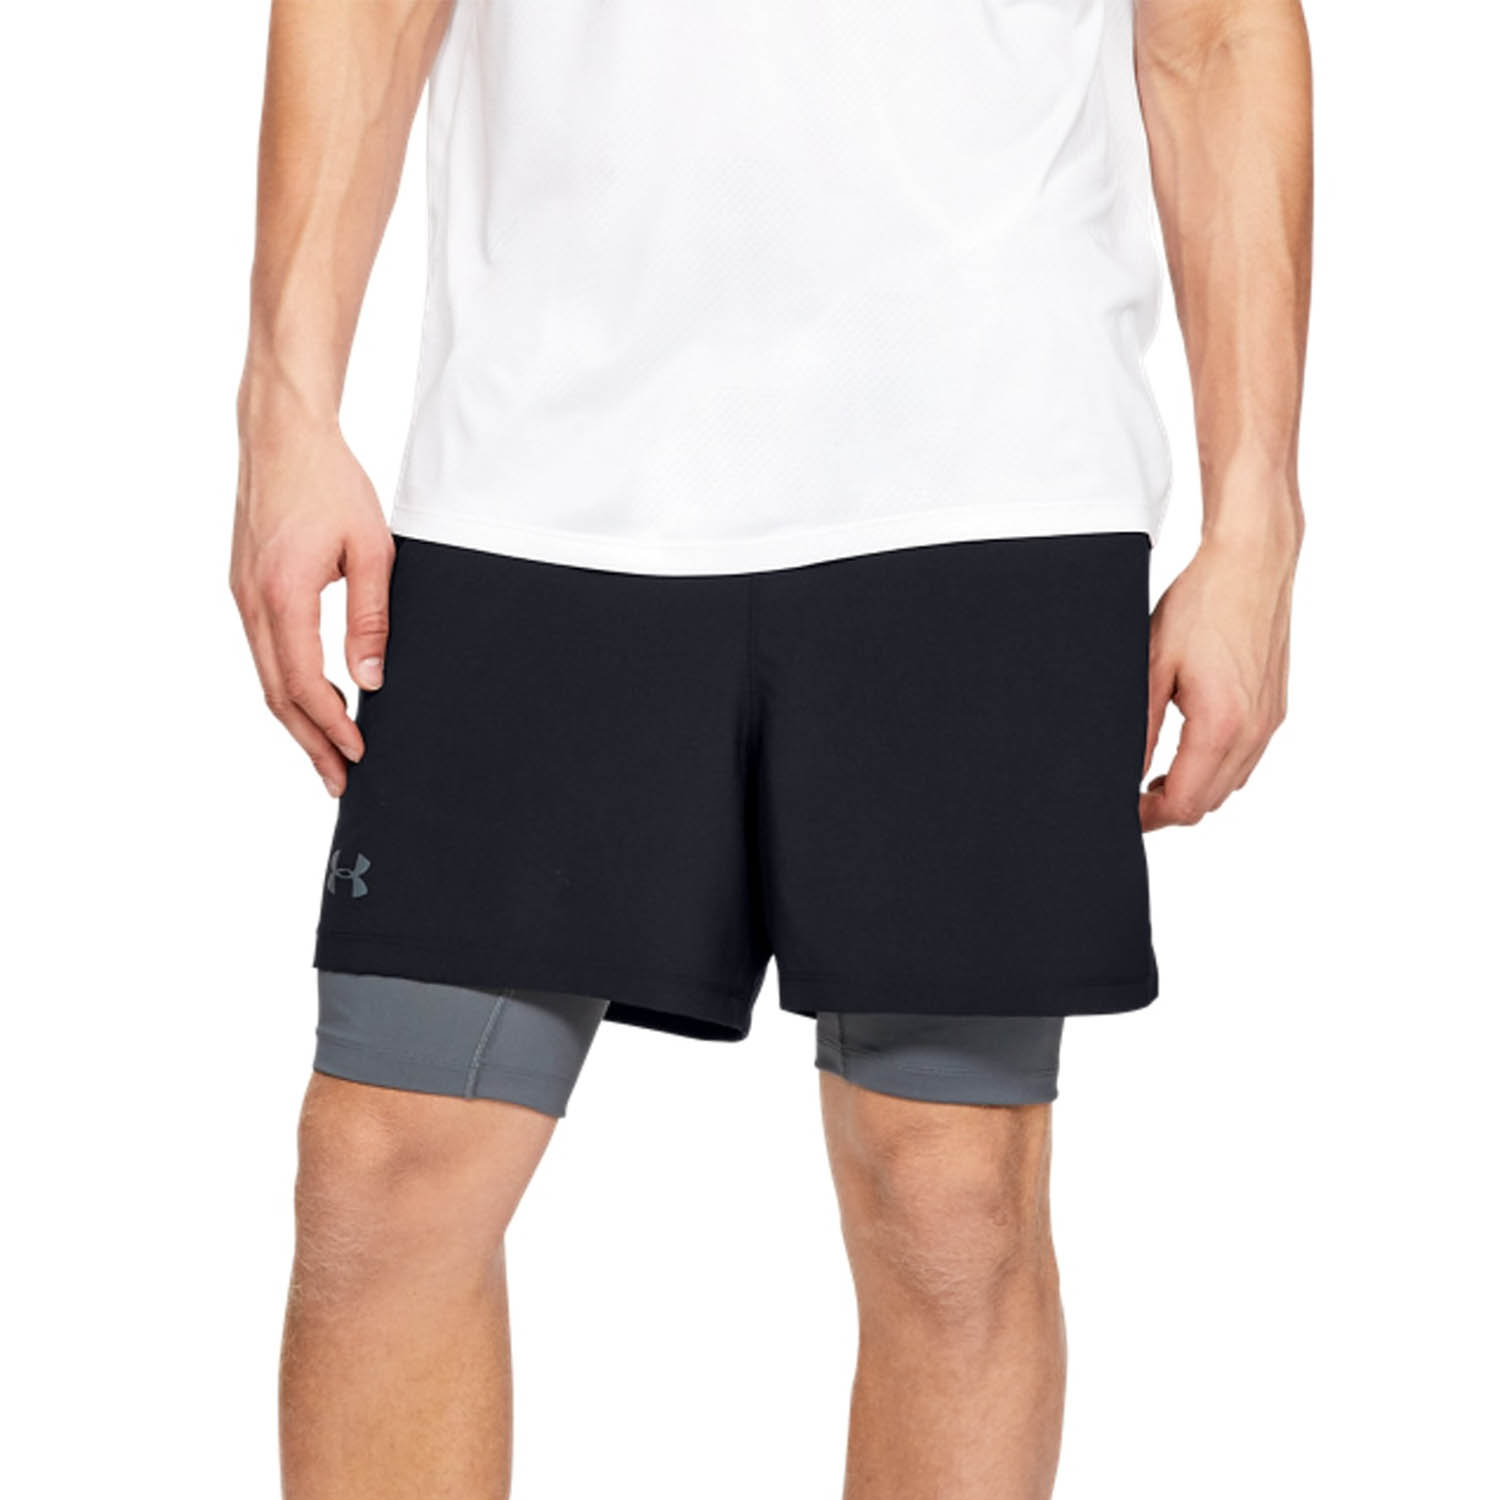 Under Armour Qualifier 2 in 1 5in Shorts - Black/Pitch Gray